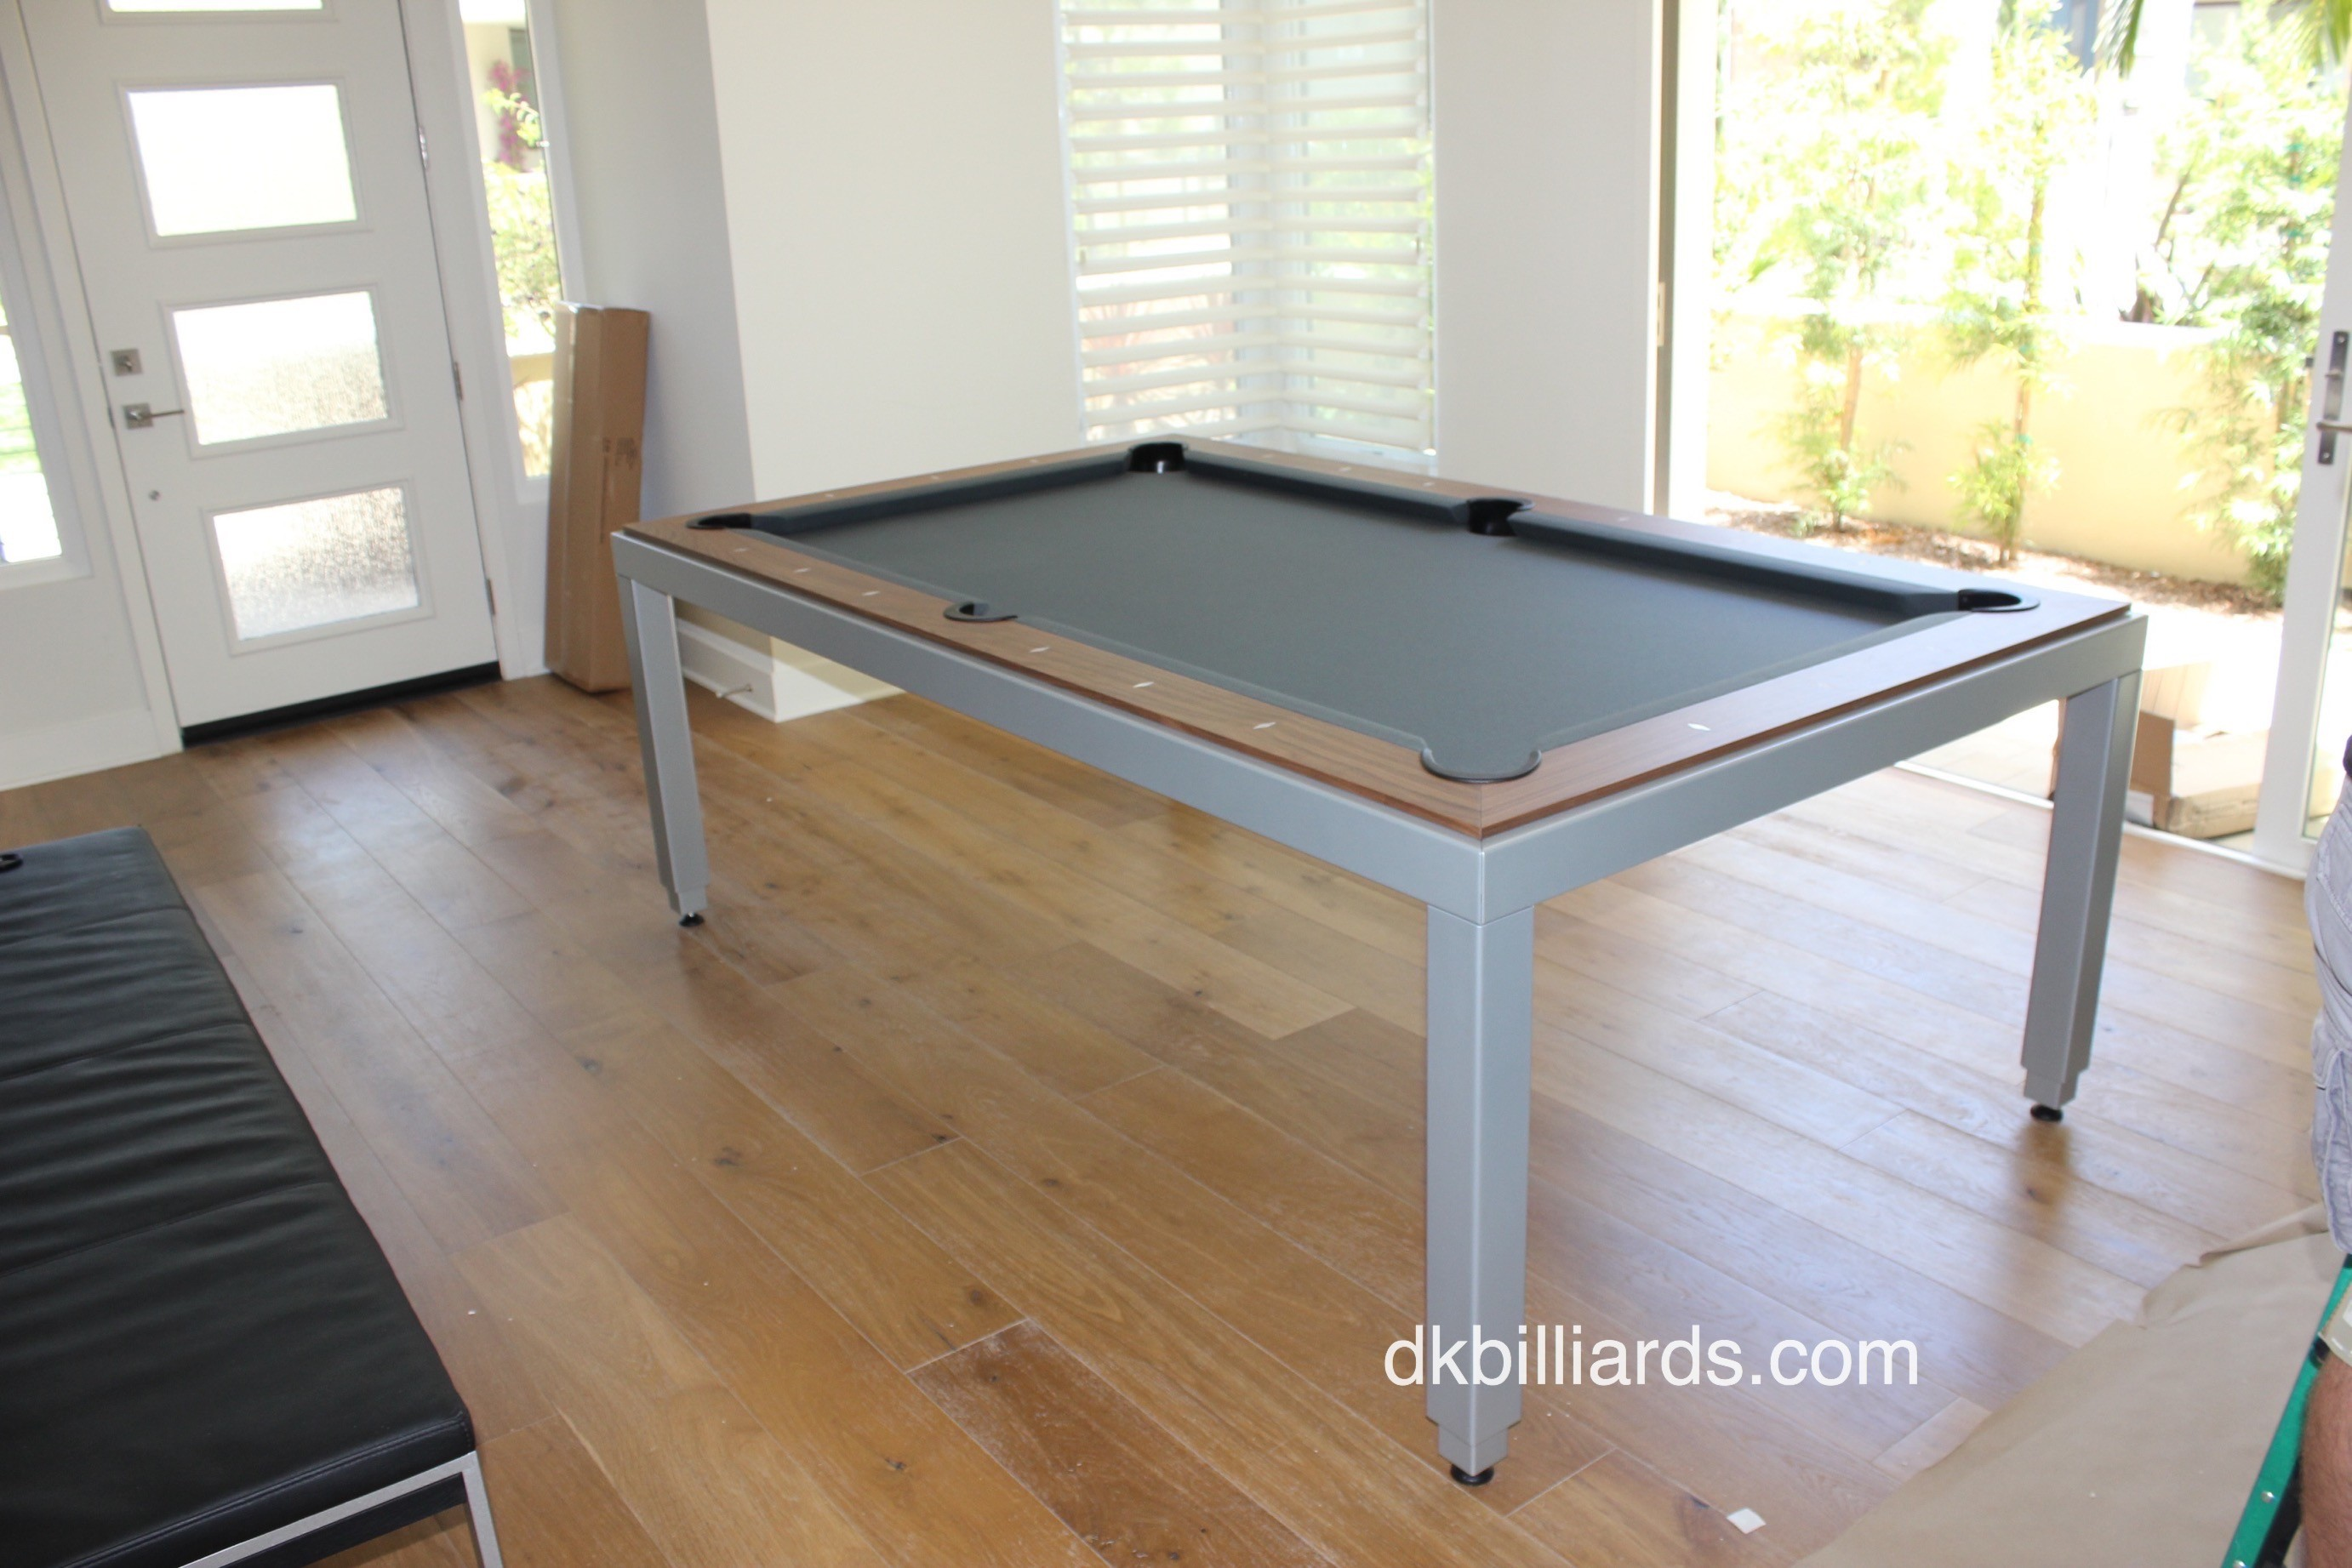 Superieur The Convertible Aramith Fusion Is A Modern Designed Dining Table That  Converts Quickly And Easily To A Pool Table. The Adjustable Height Keeps  The Billiard ...